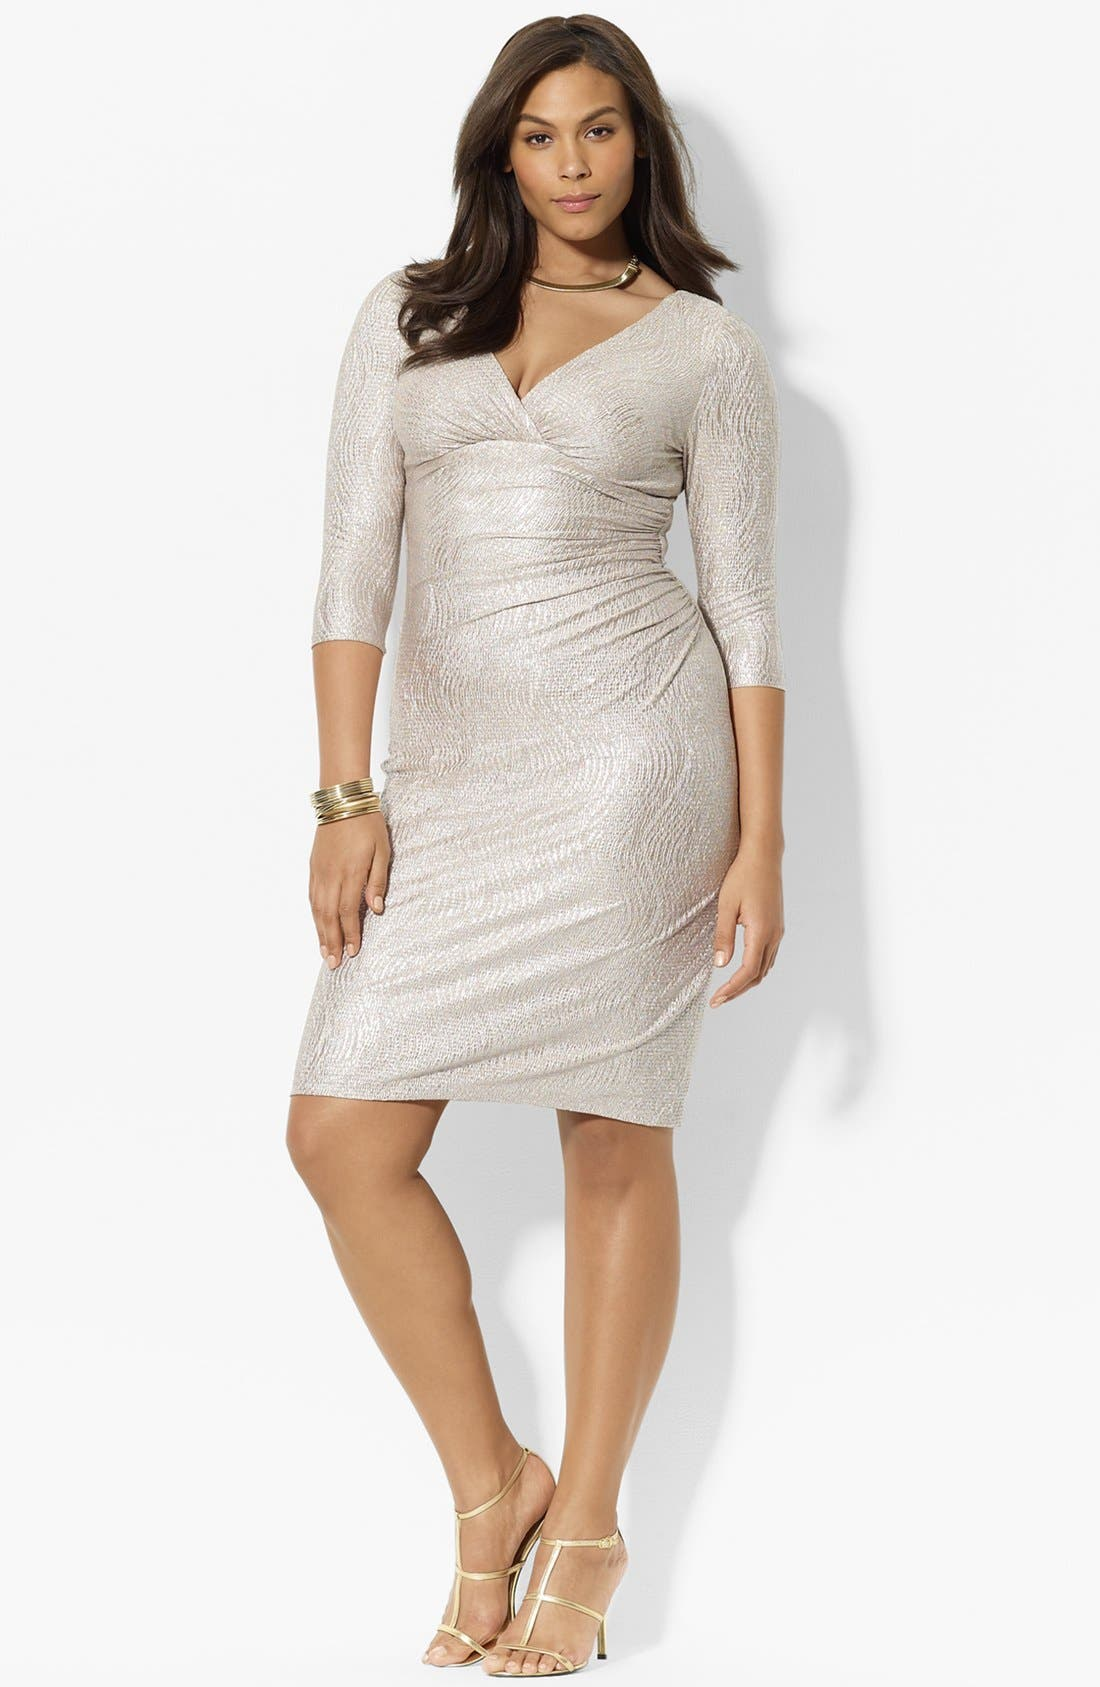 Alternate Image 1 Selected - Lauren Ralph Lauren Metallic Jersey Dress (Plus Size)